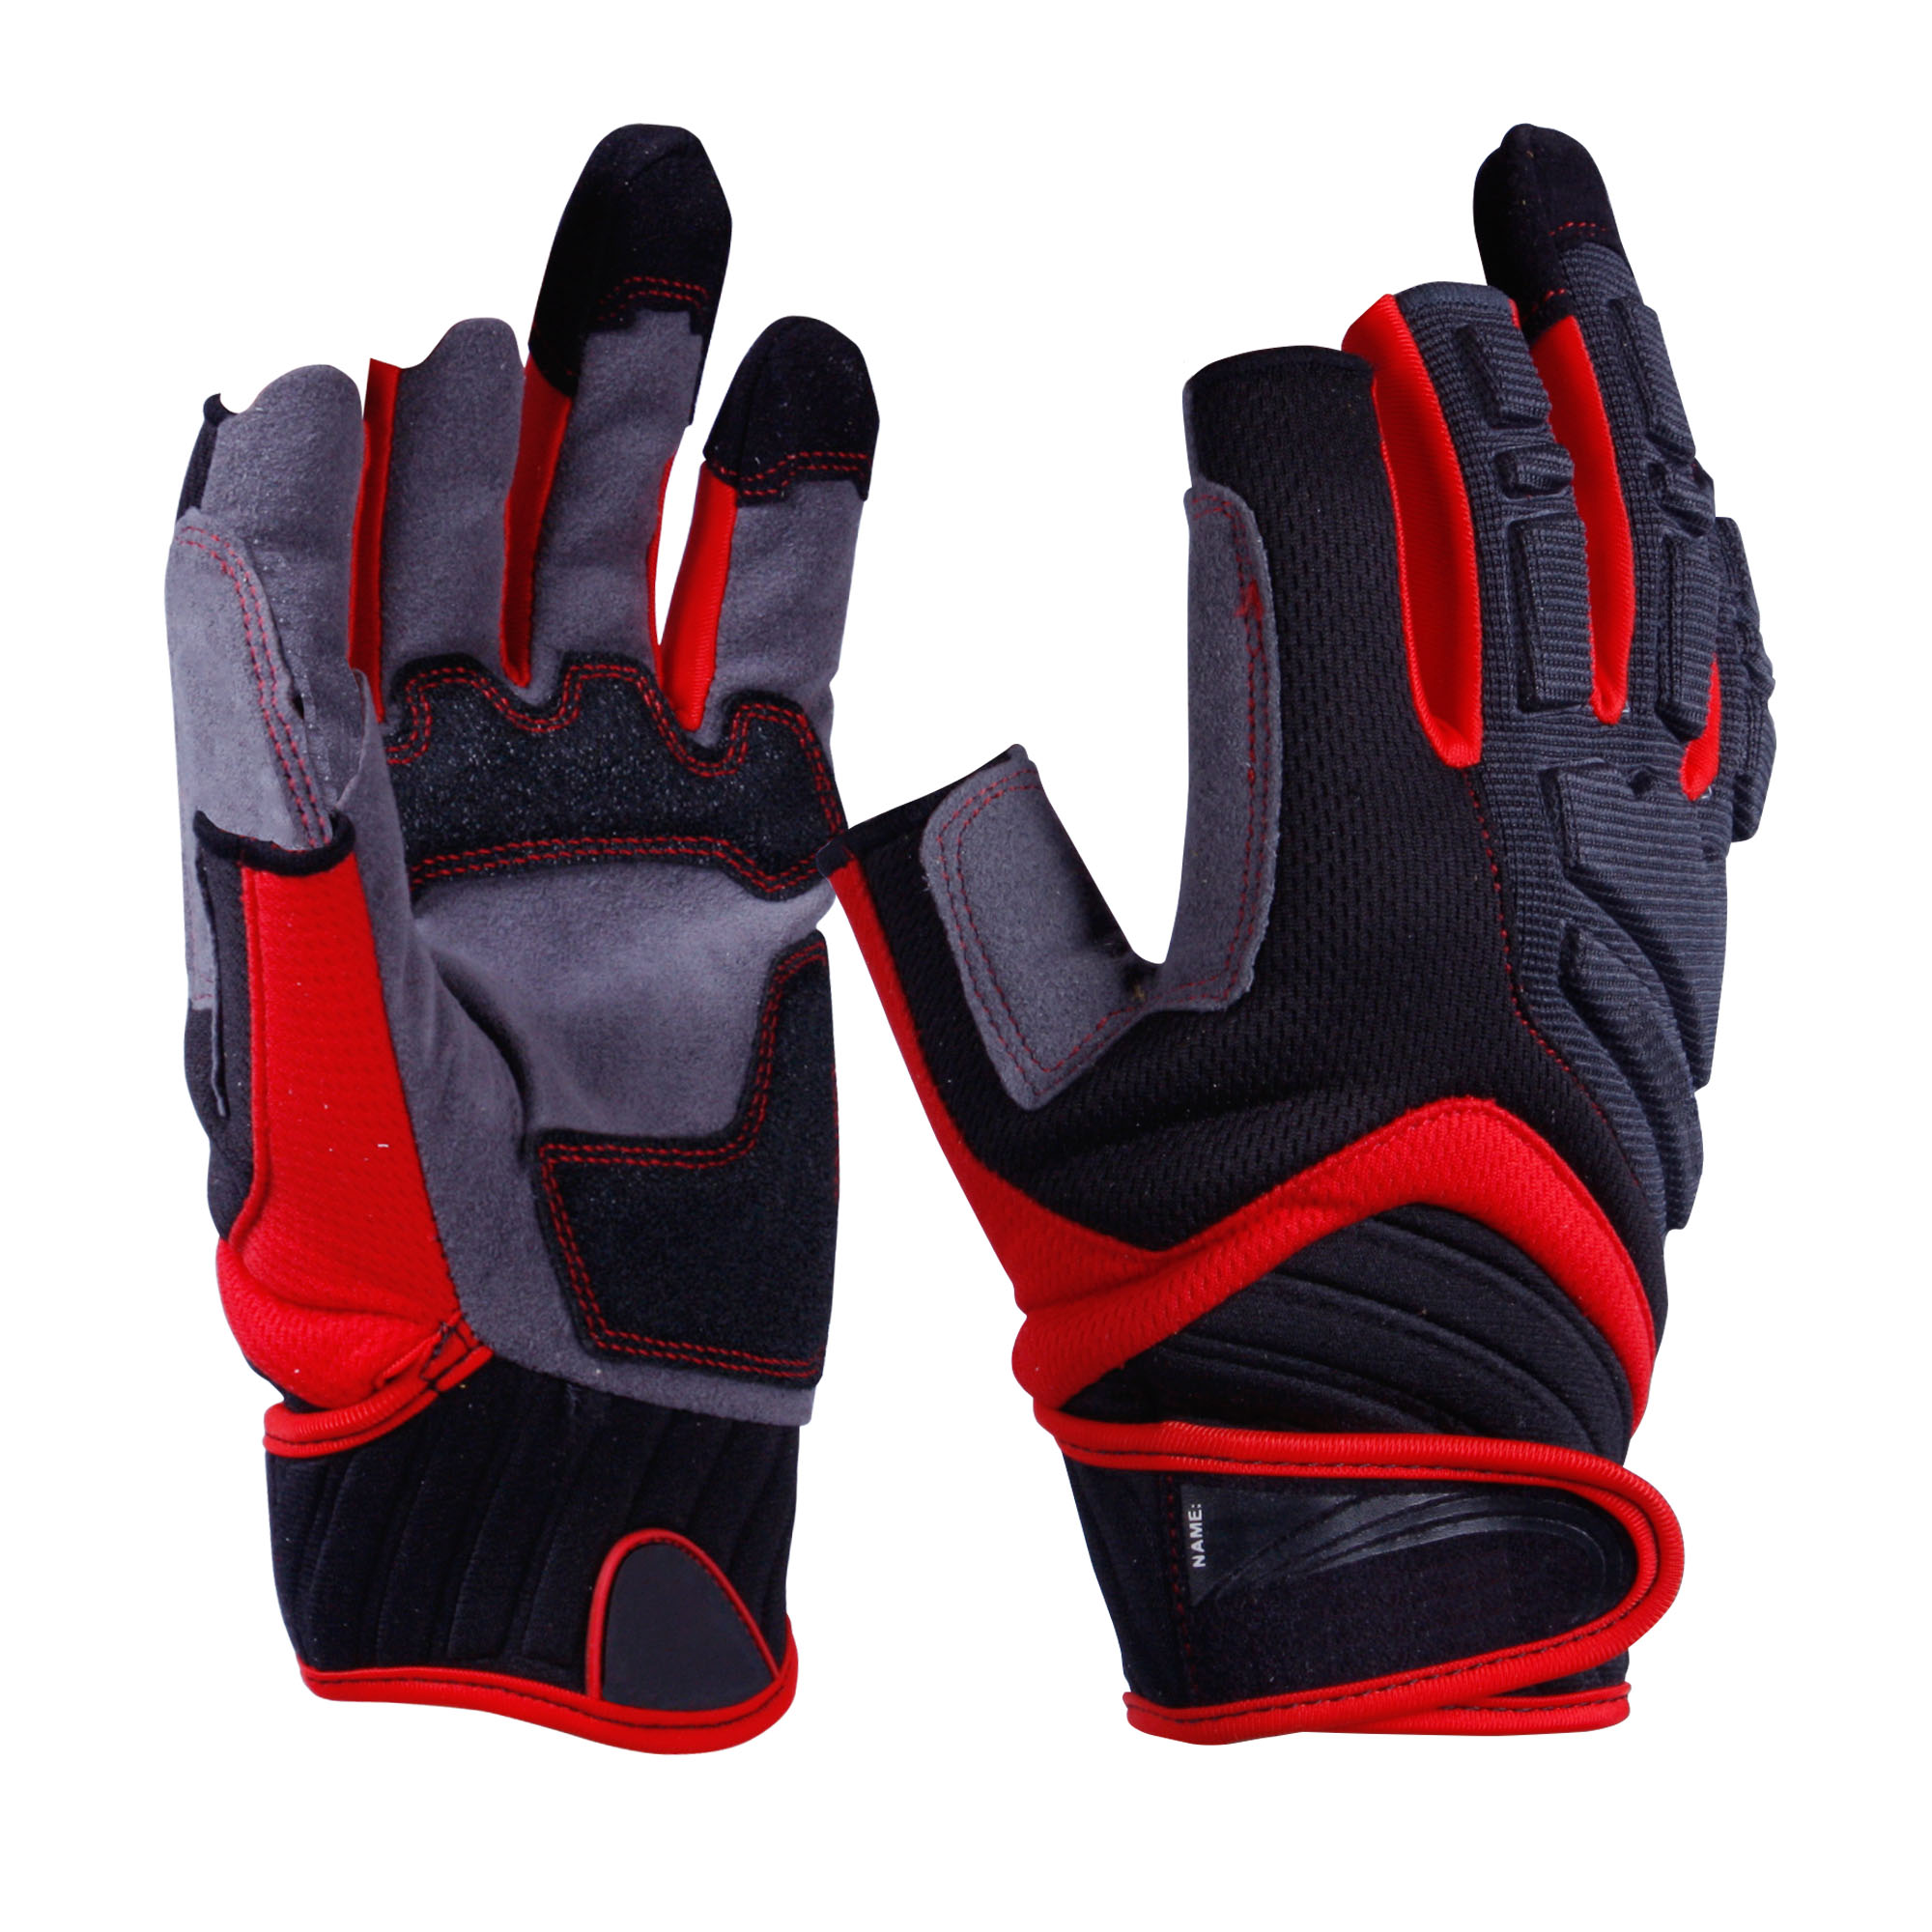 Mechanic Safety Work Gloves/MSG-01